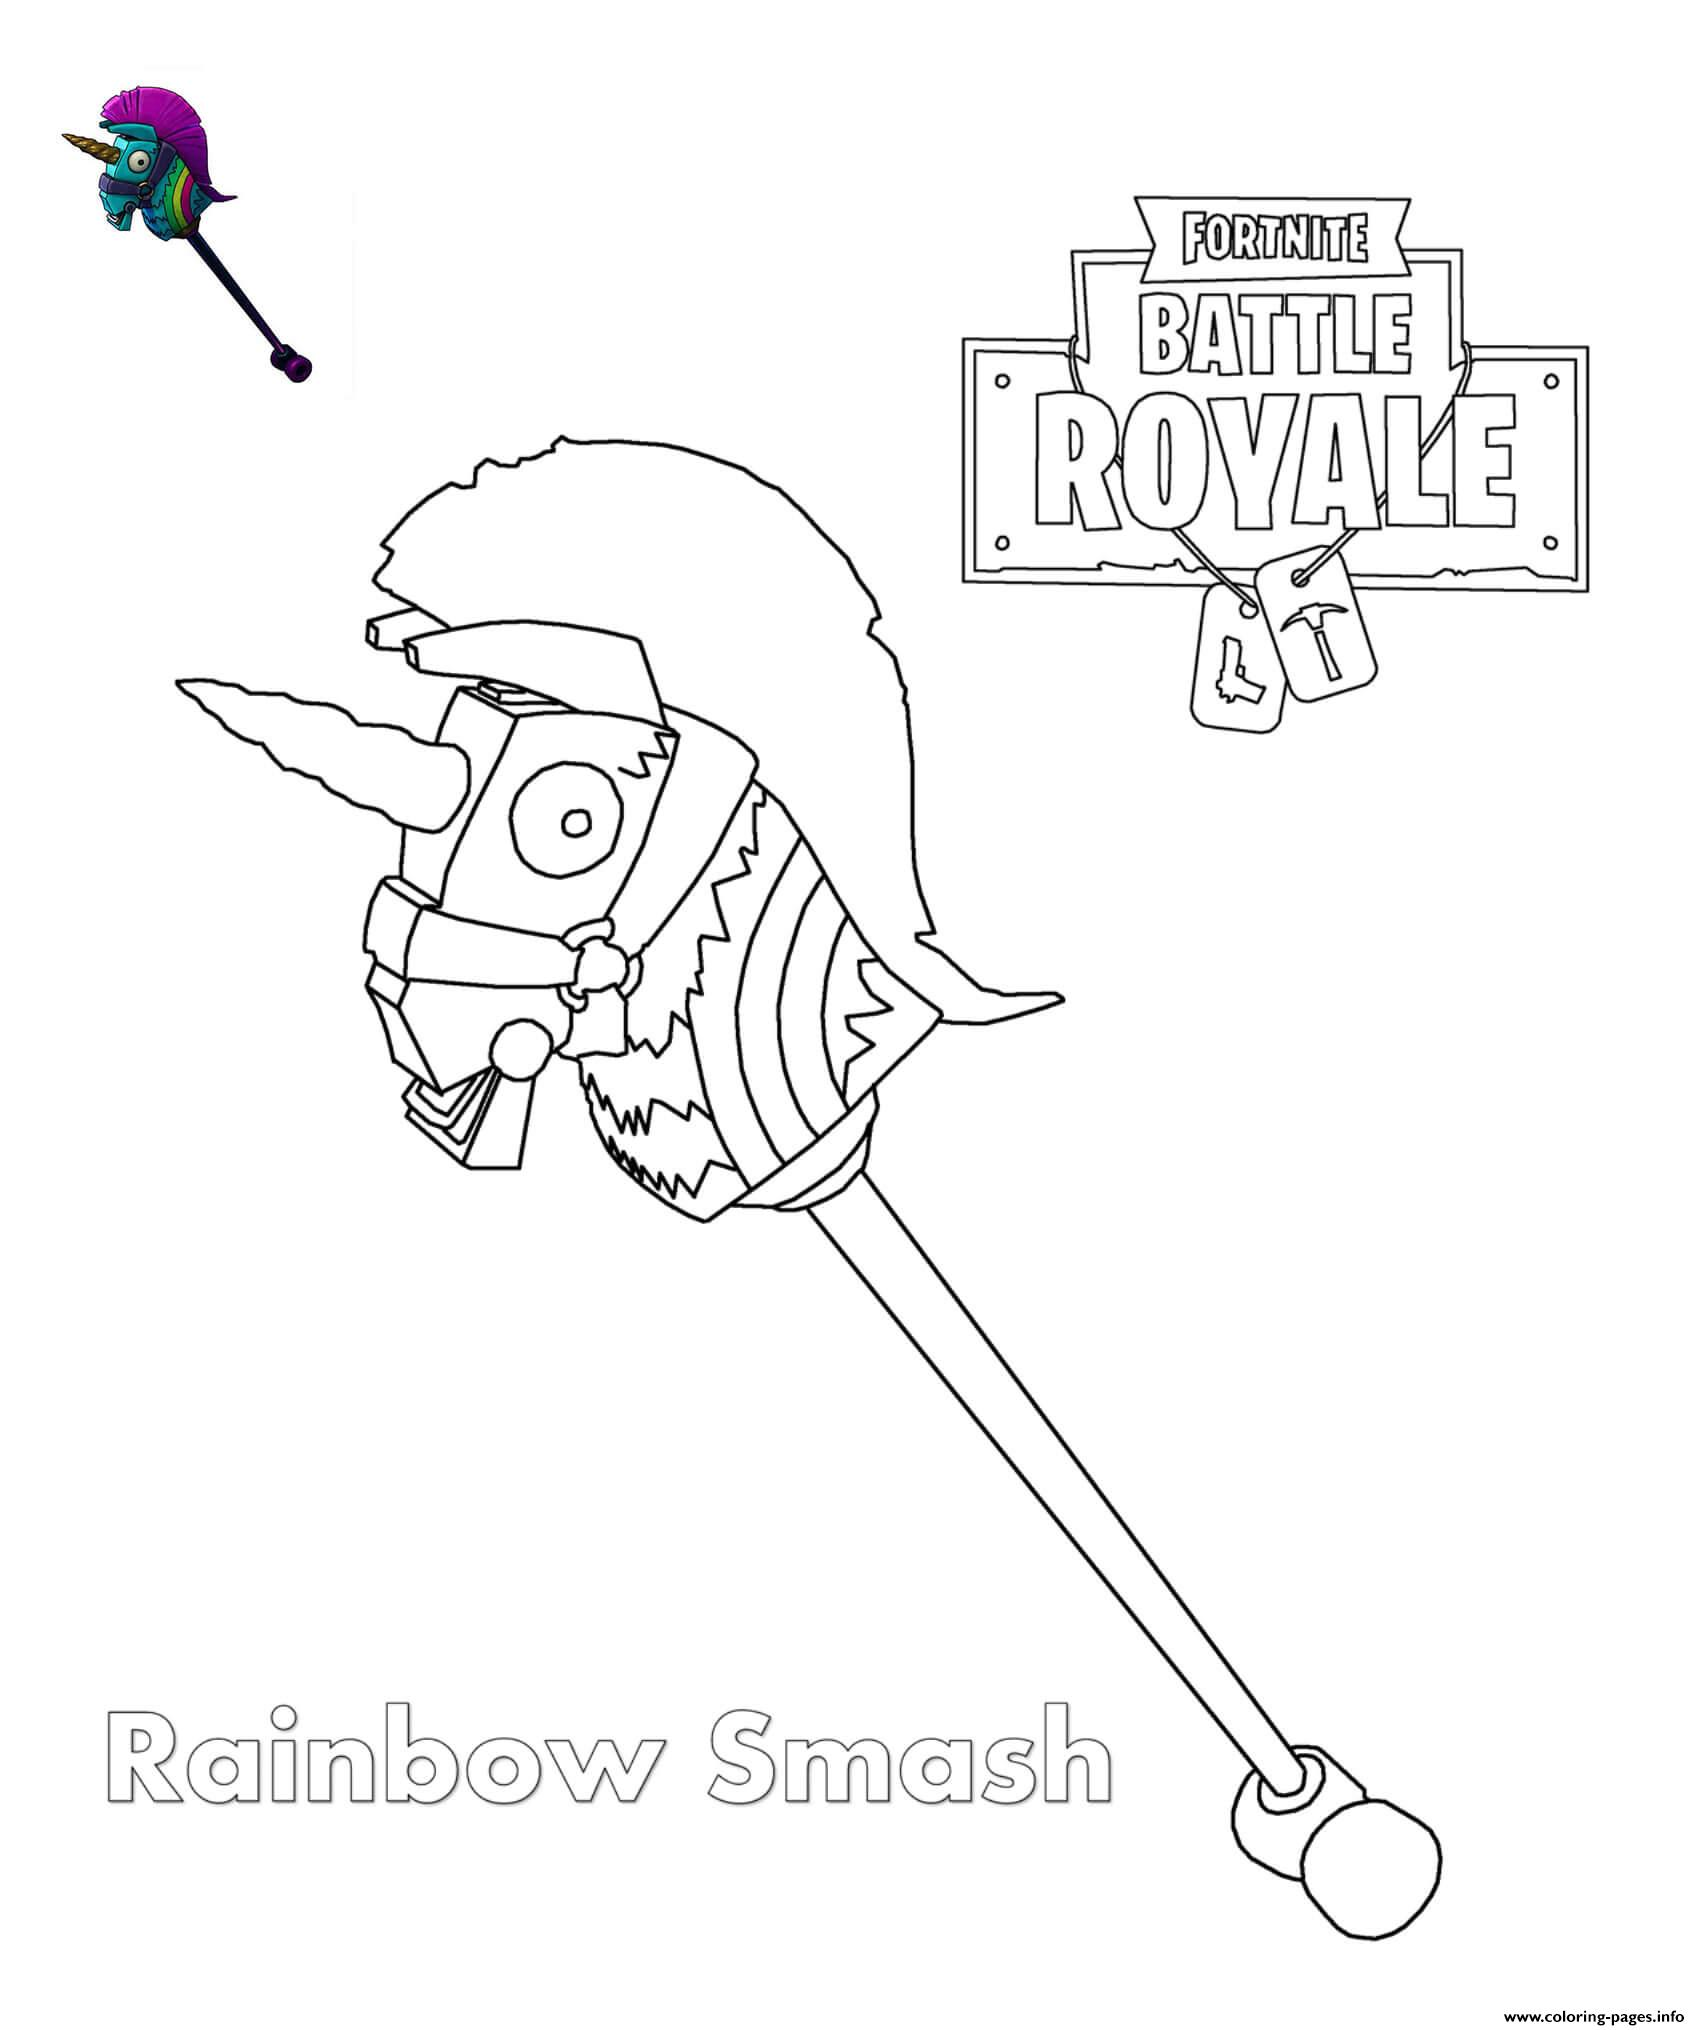 Rainbow Smash Fortnite Coloring Pages Printable